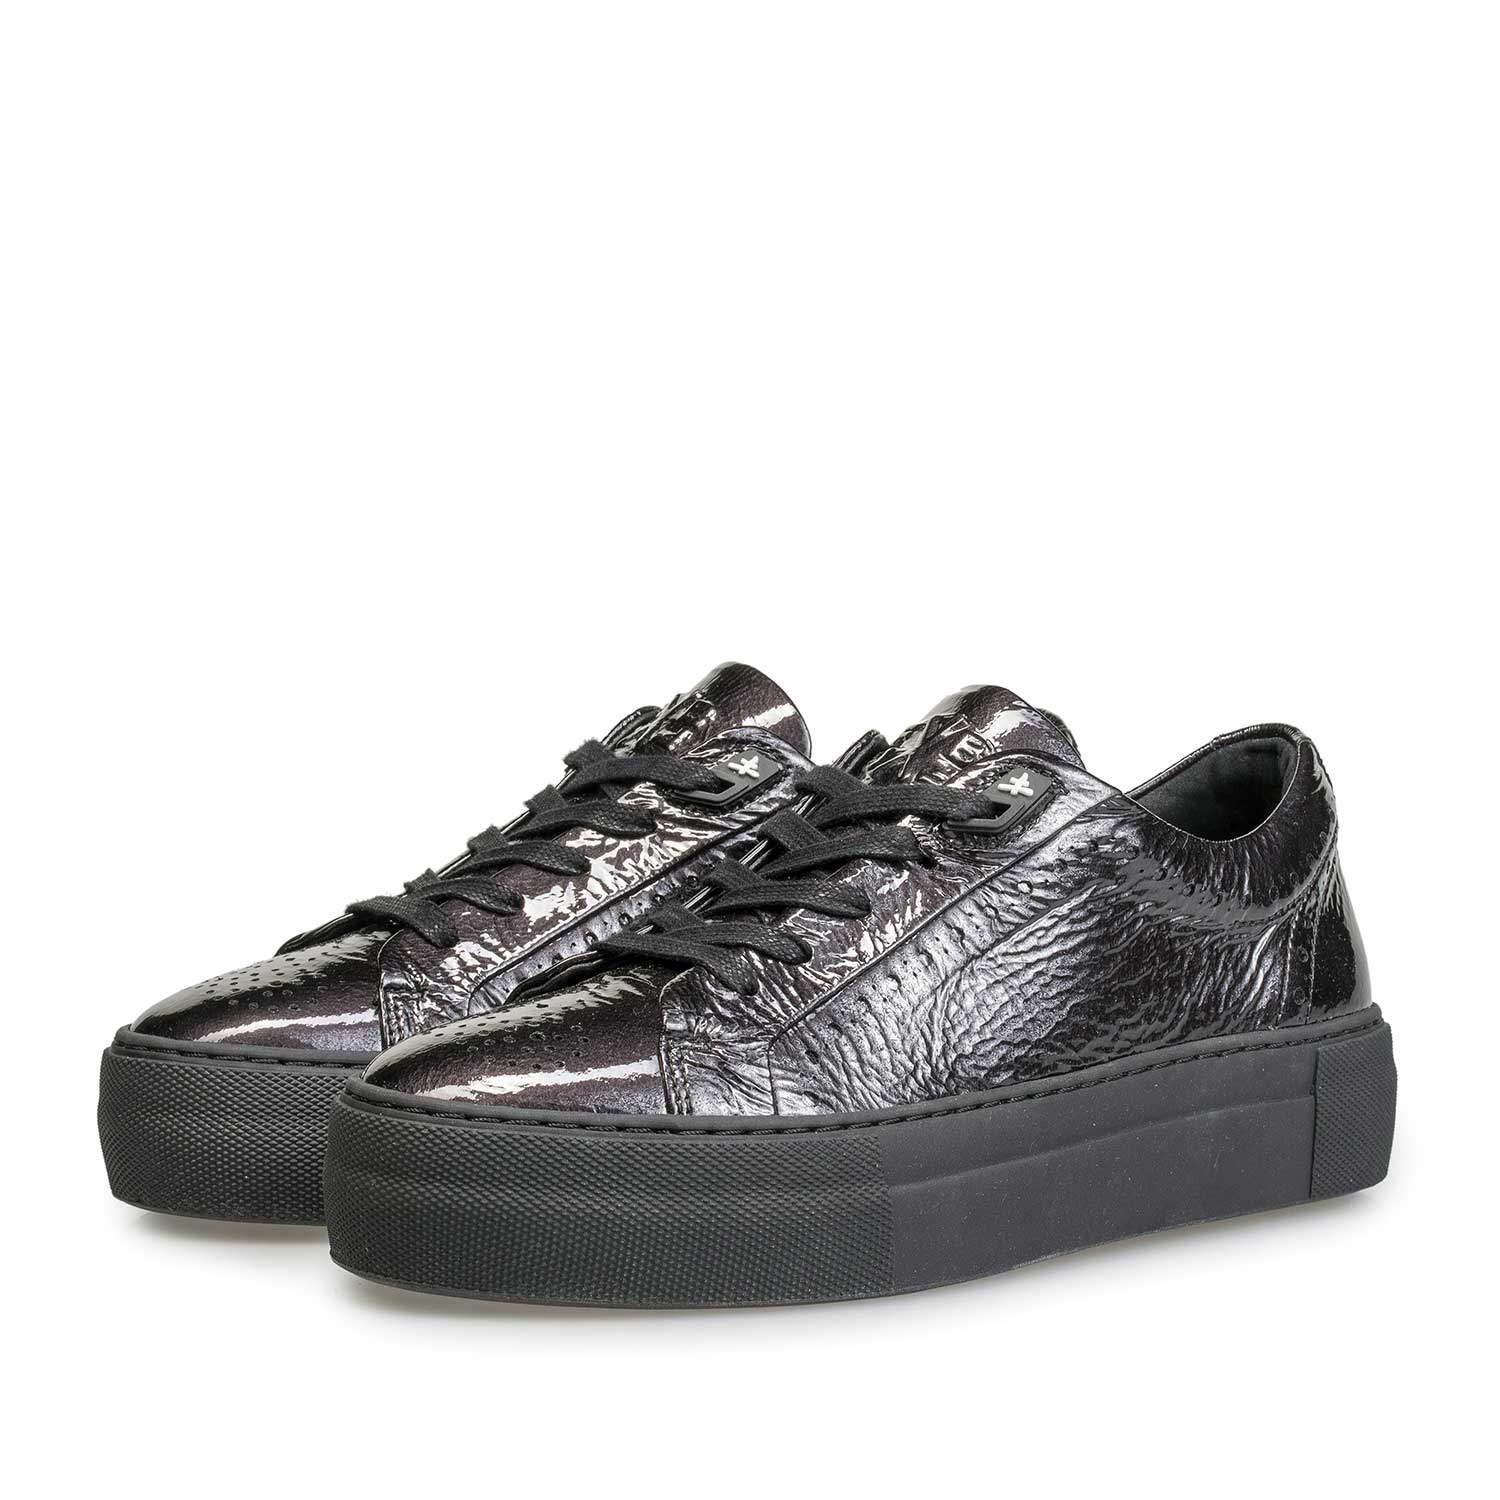 85253/04 - Black patent leather sneaker with wrinkle effect